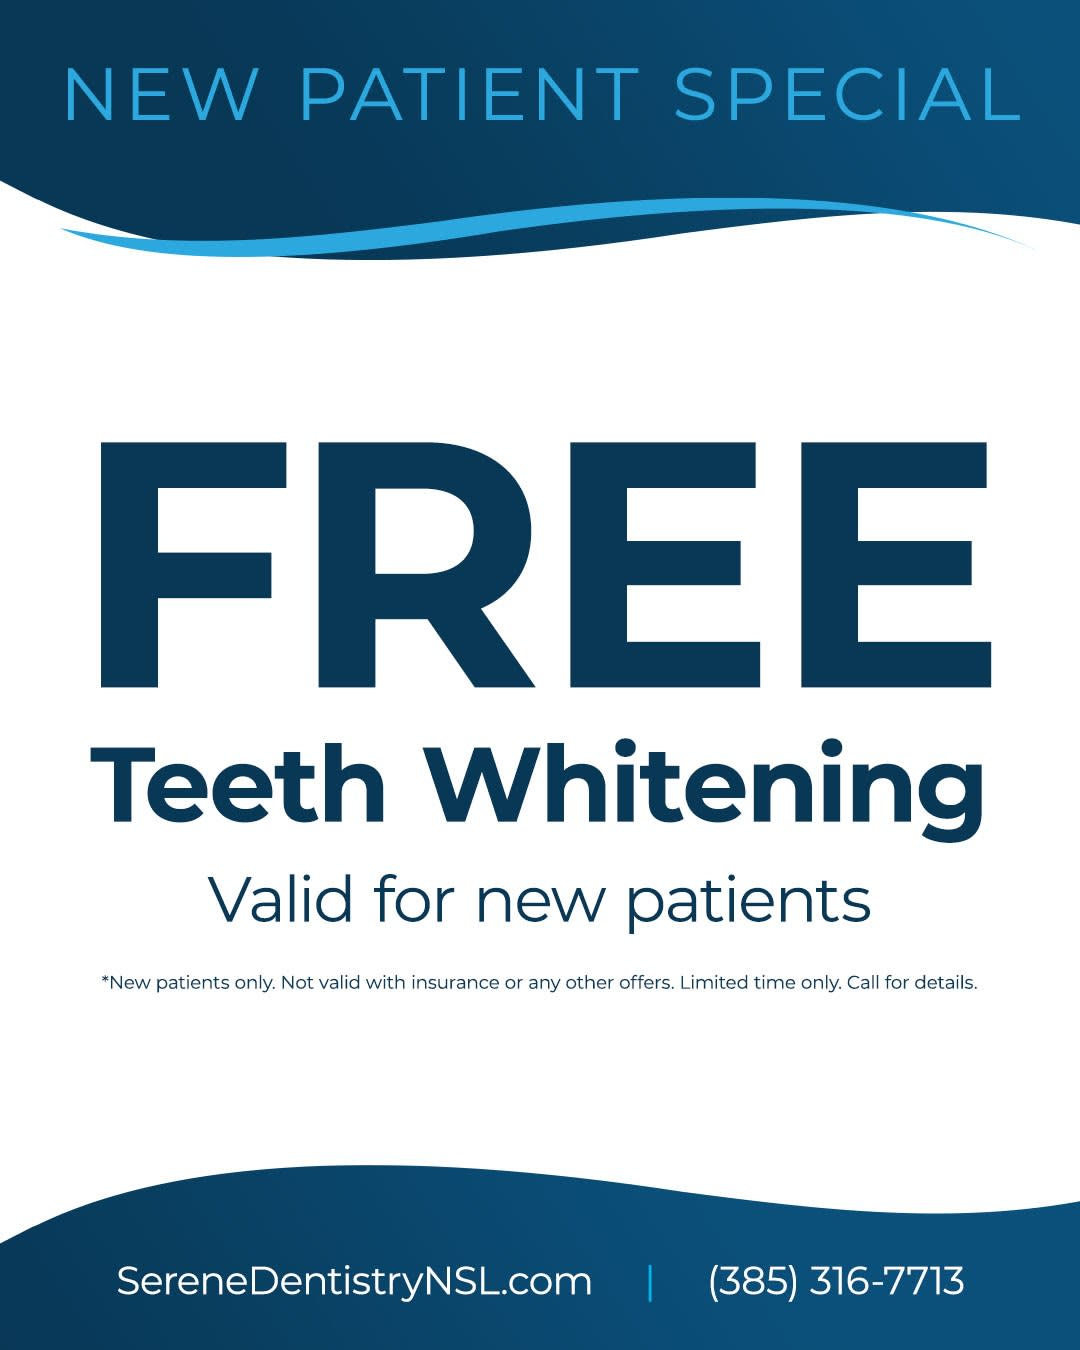 Free teeth whitening for new patients.